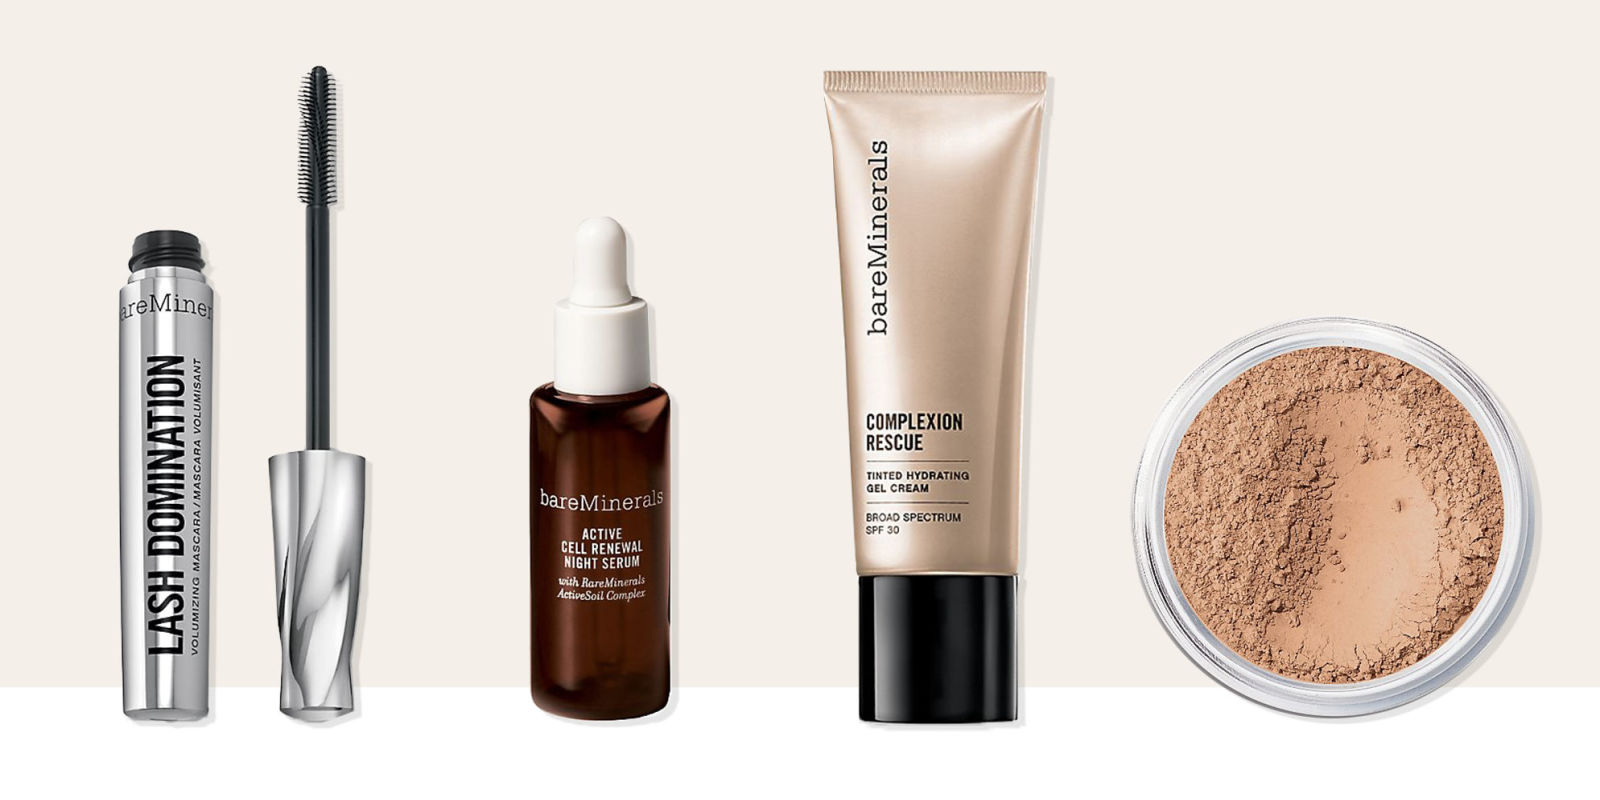 9 best bare minerals makeup amp skincare products 2018